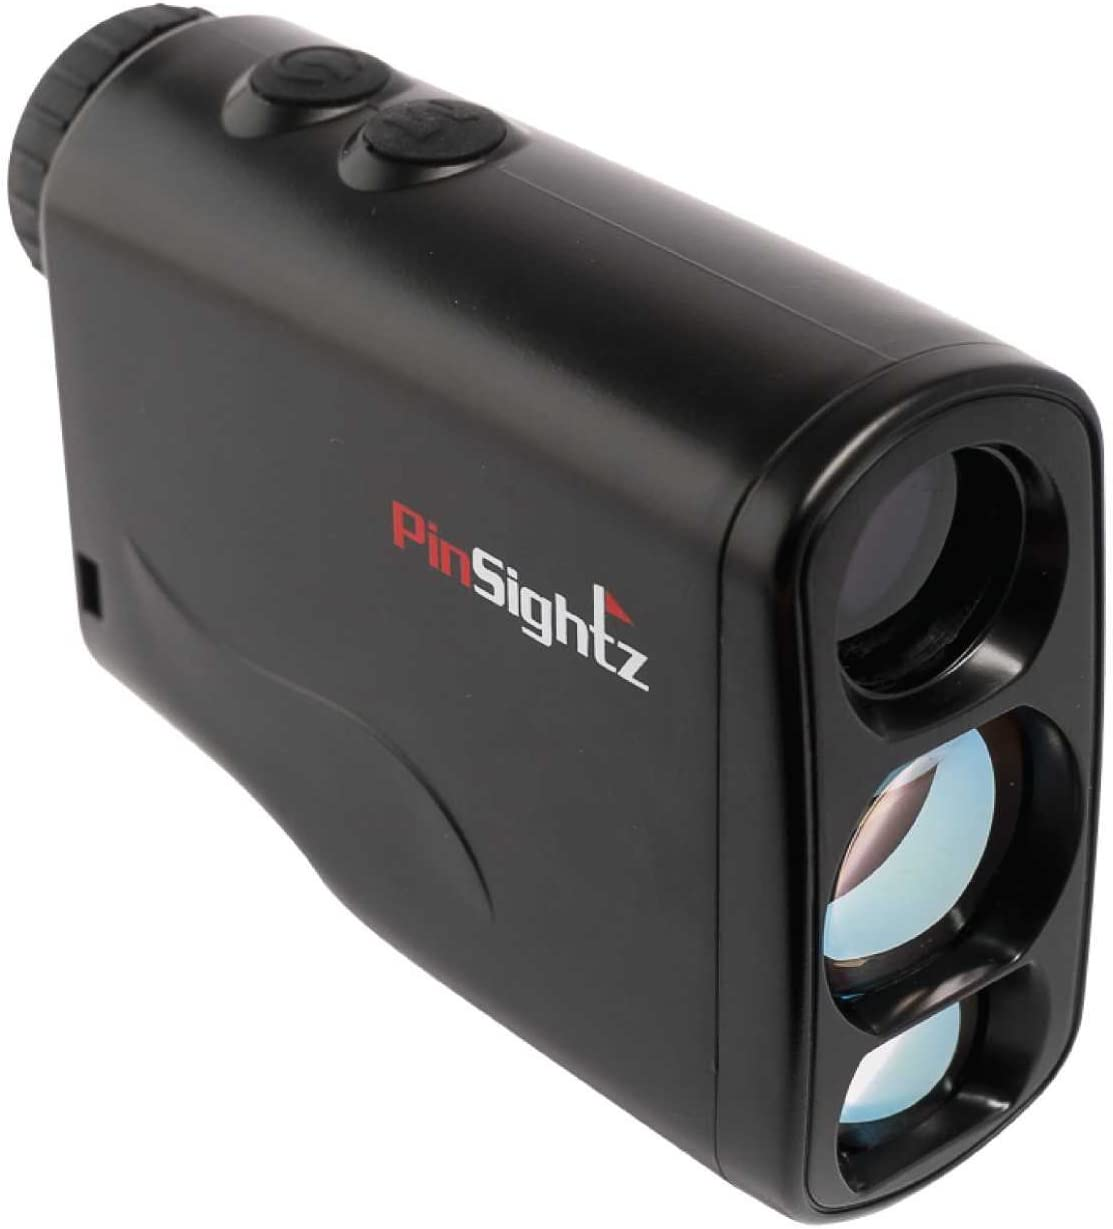 PinSightz Golf Range Finder Laser Accurate Distance, Slope, Speed, Height, and Ranging Vibration Lock with Pin Finder Fog and Interference Protection Incl. Case and Battery